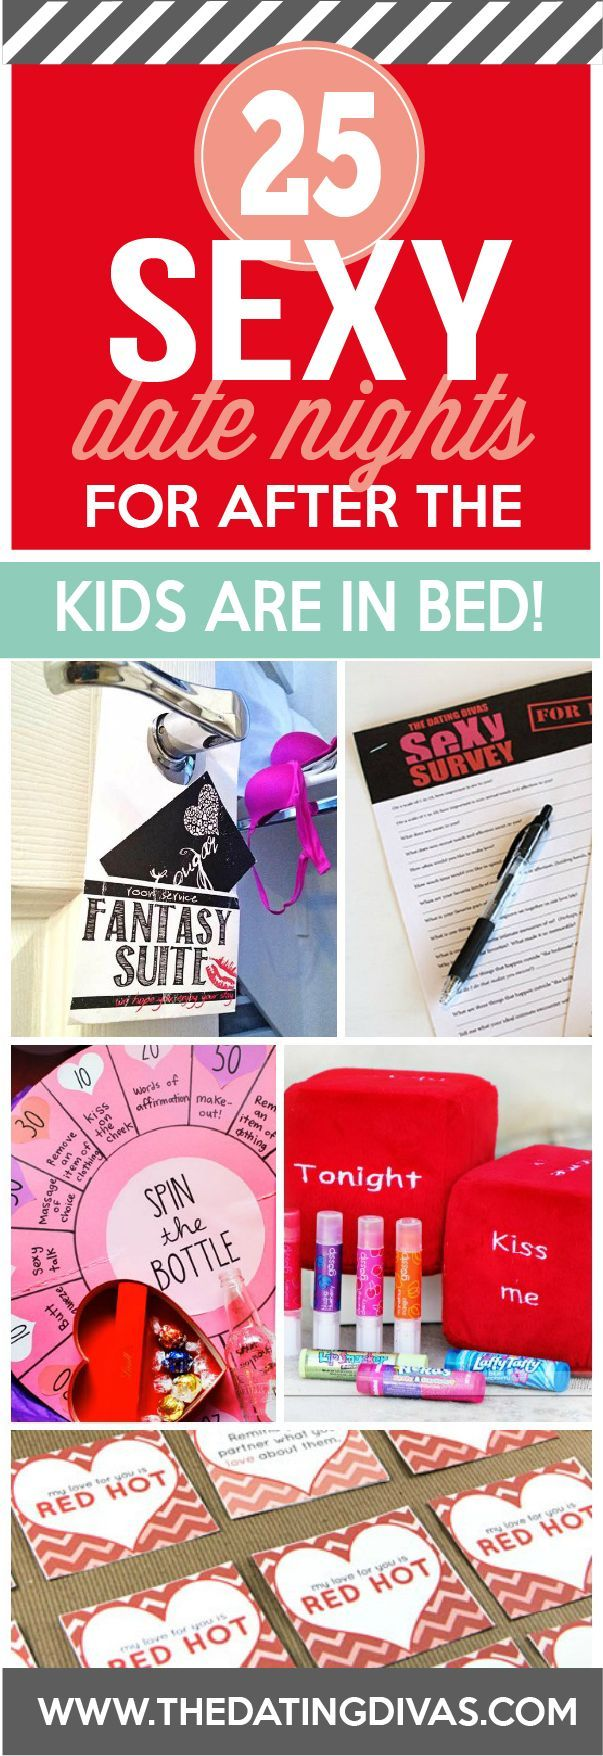 Put the kids to bed - it is mommy and daddy time! Some sexy bedroom games for after the kids are in bed! www.TheDatingDivas.com